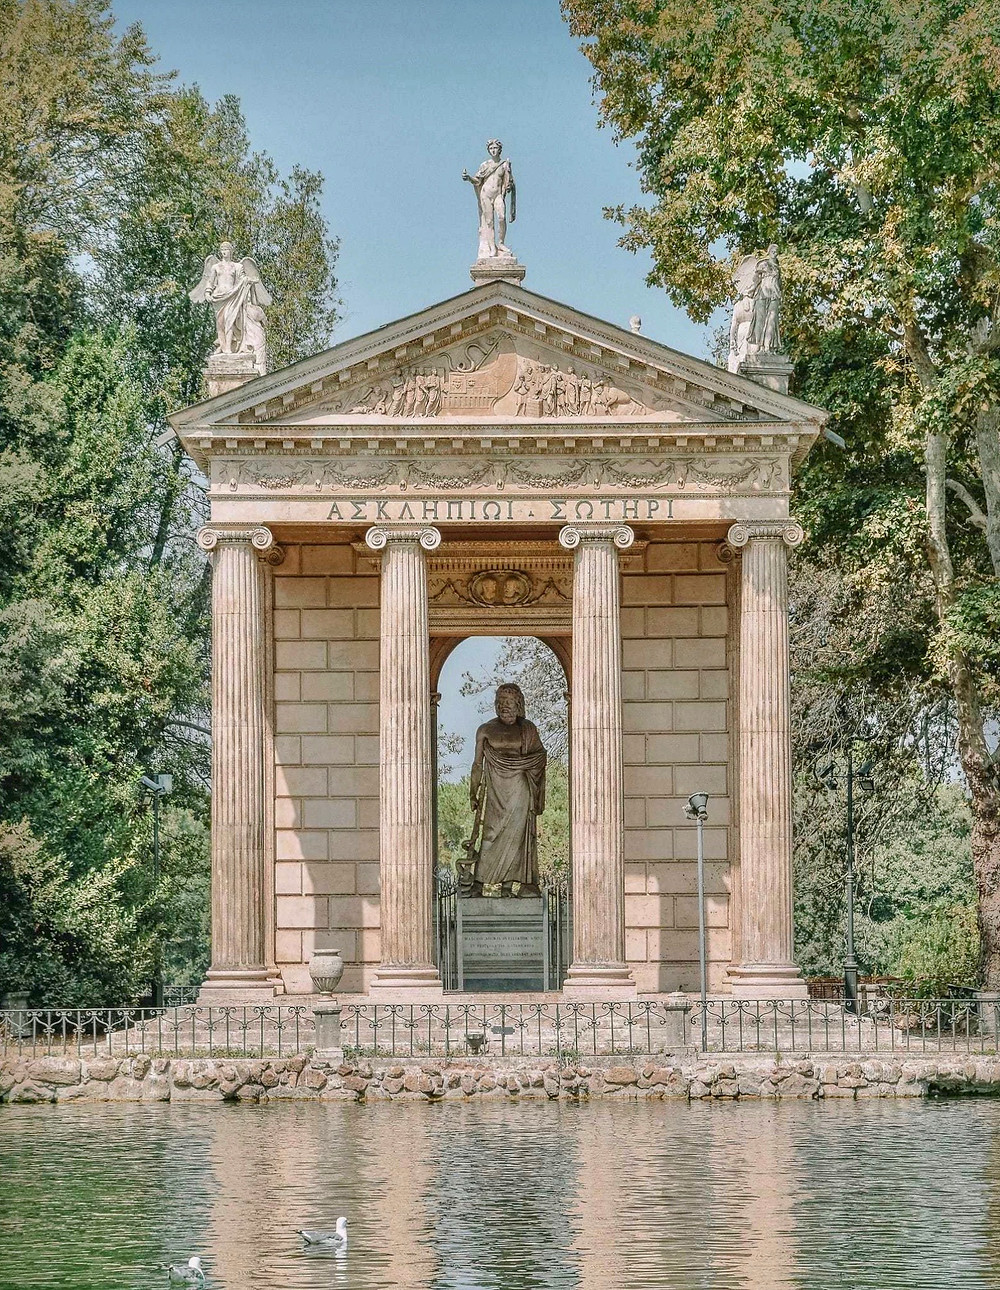 Temple of Diana in the Borghese Gardens